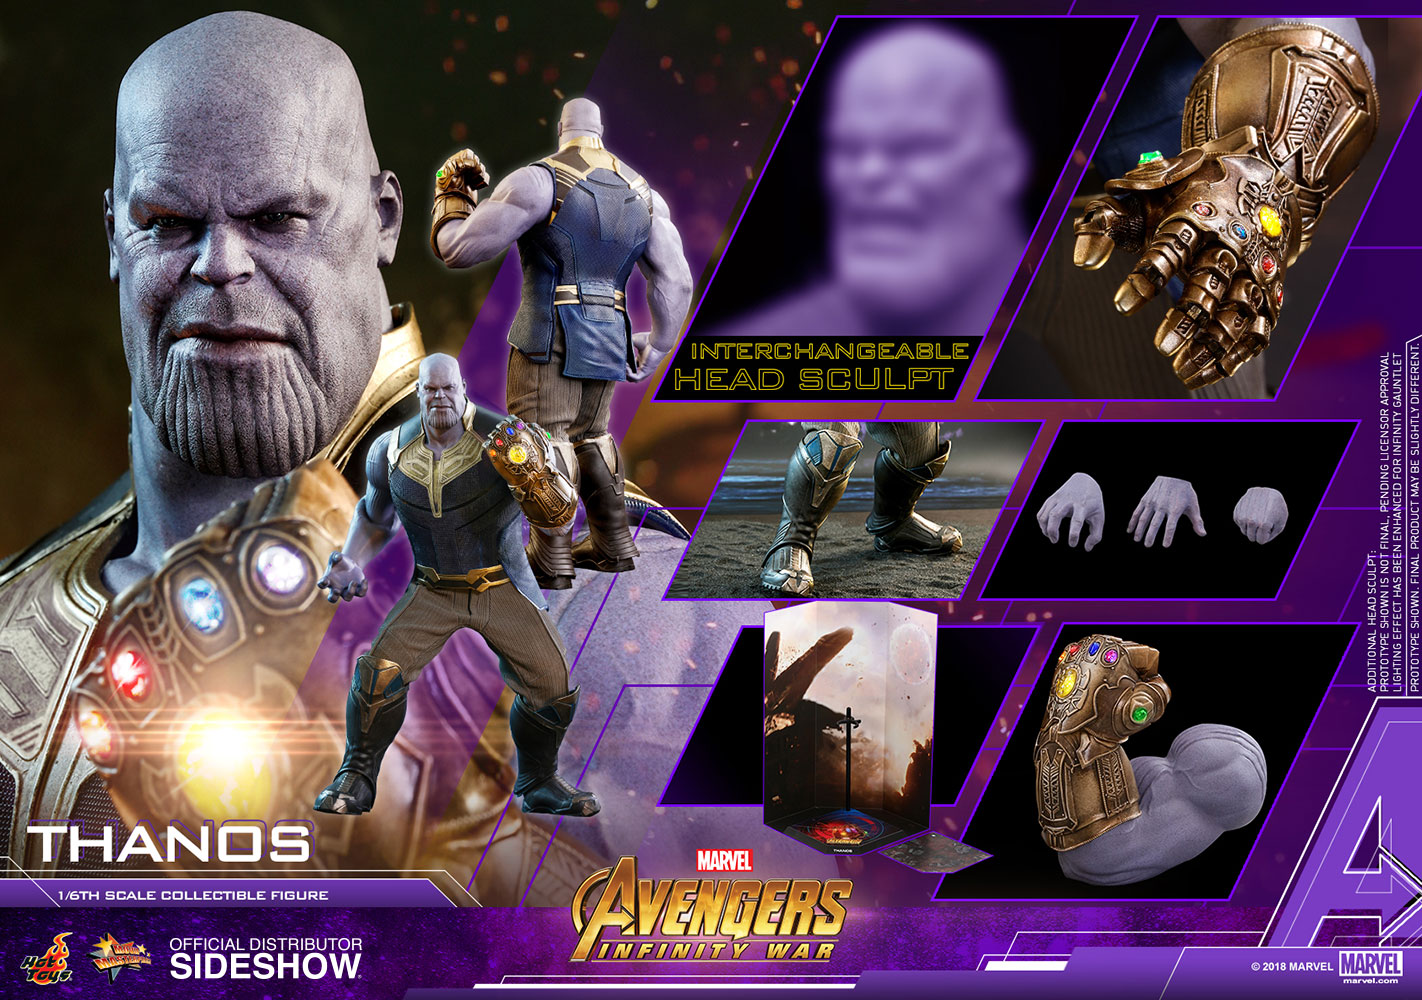 [Pre-Order] Avengers: Infinity War - Thanos Movie Masterpiece